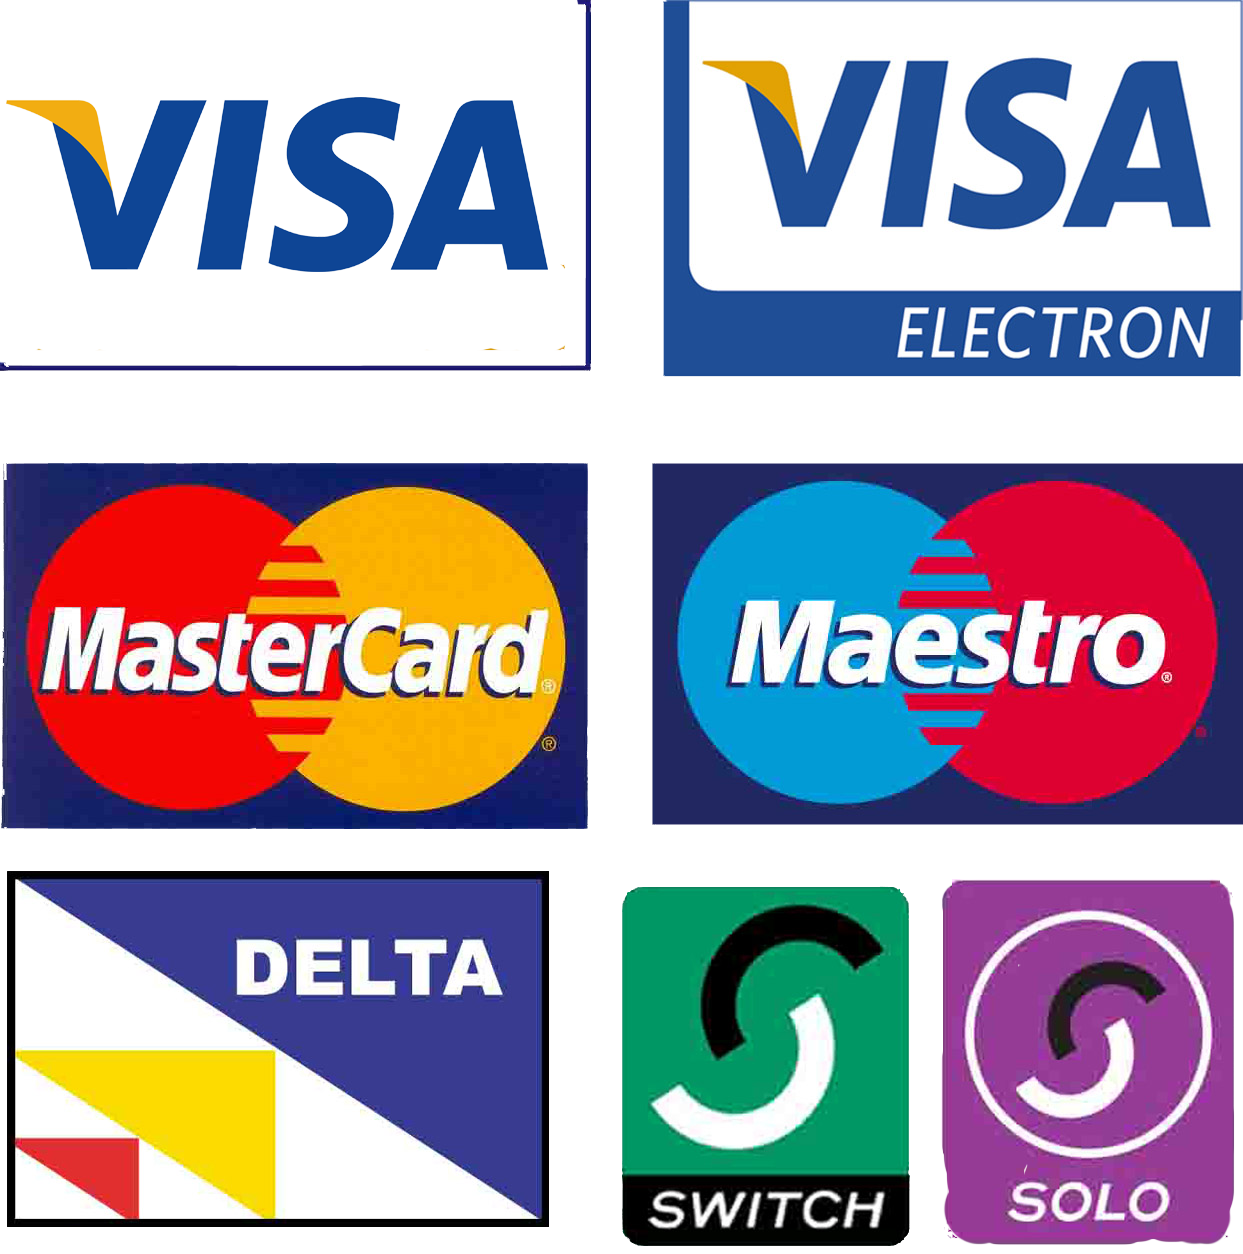 how to use visa electron online